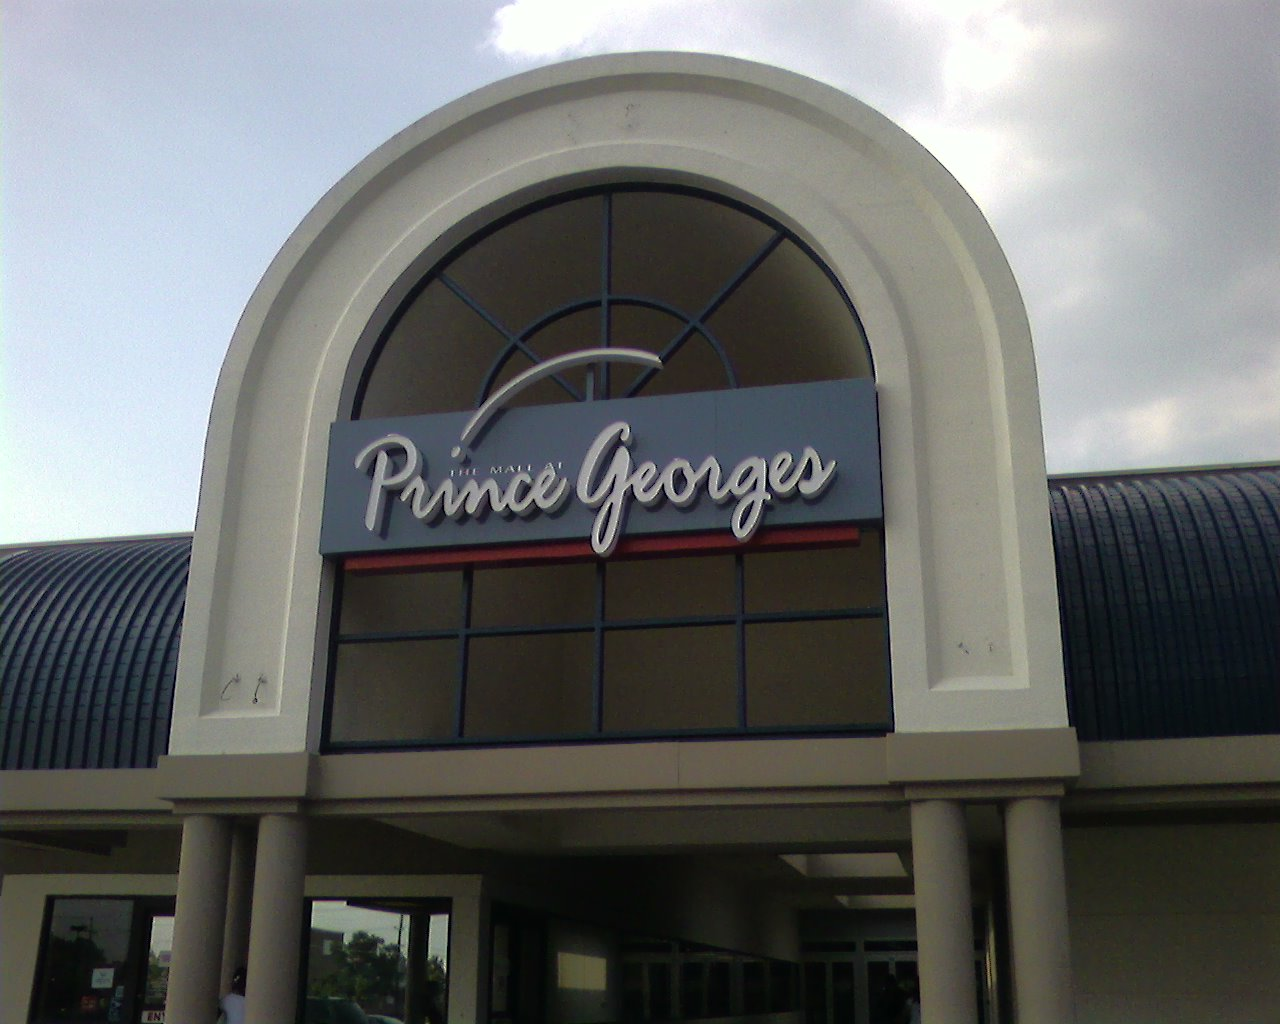 Prince Georges Plaza in Hyattsville, MD